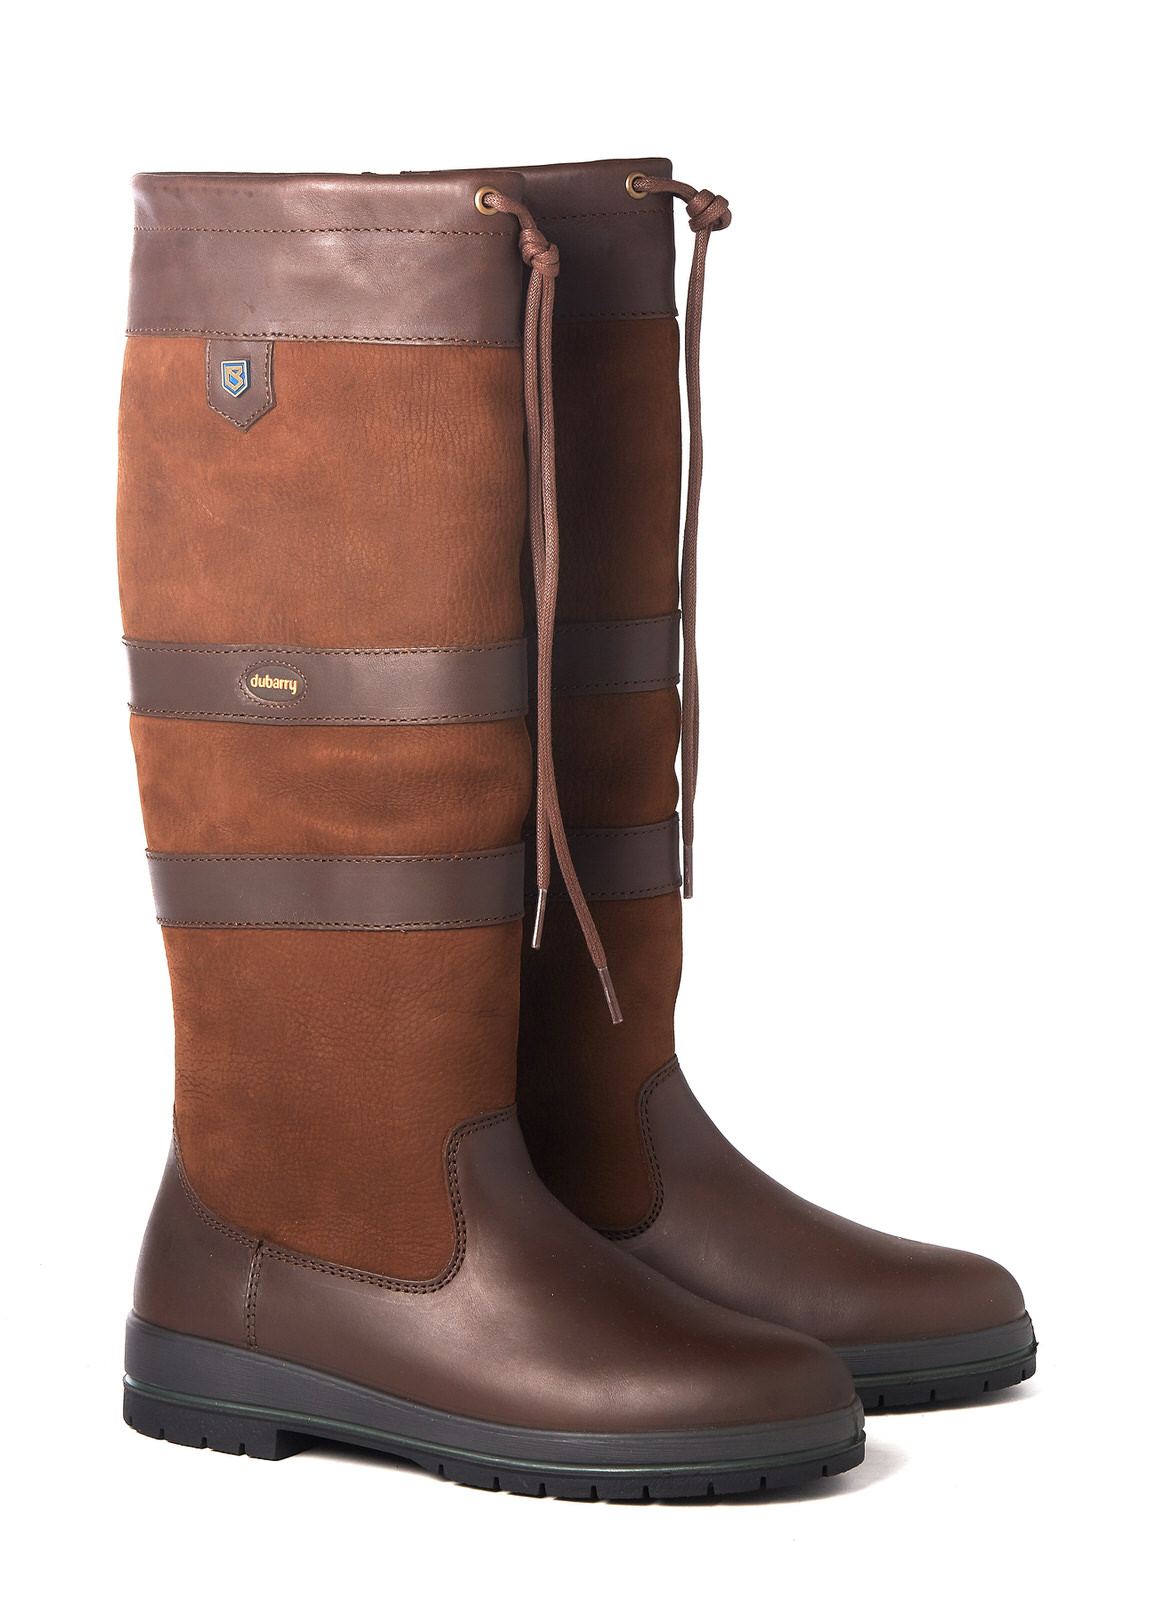 Galway SlimFit™ Country Boot - Walnut